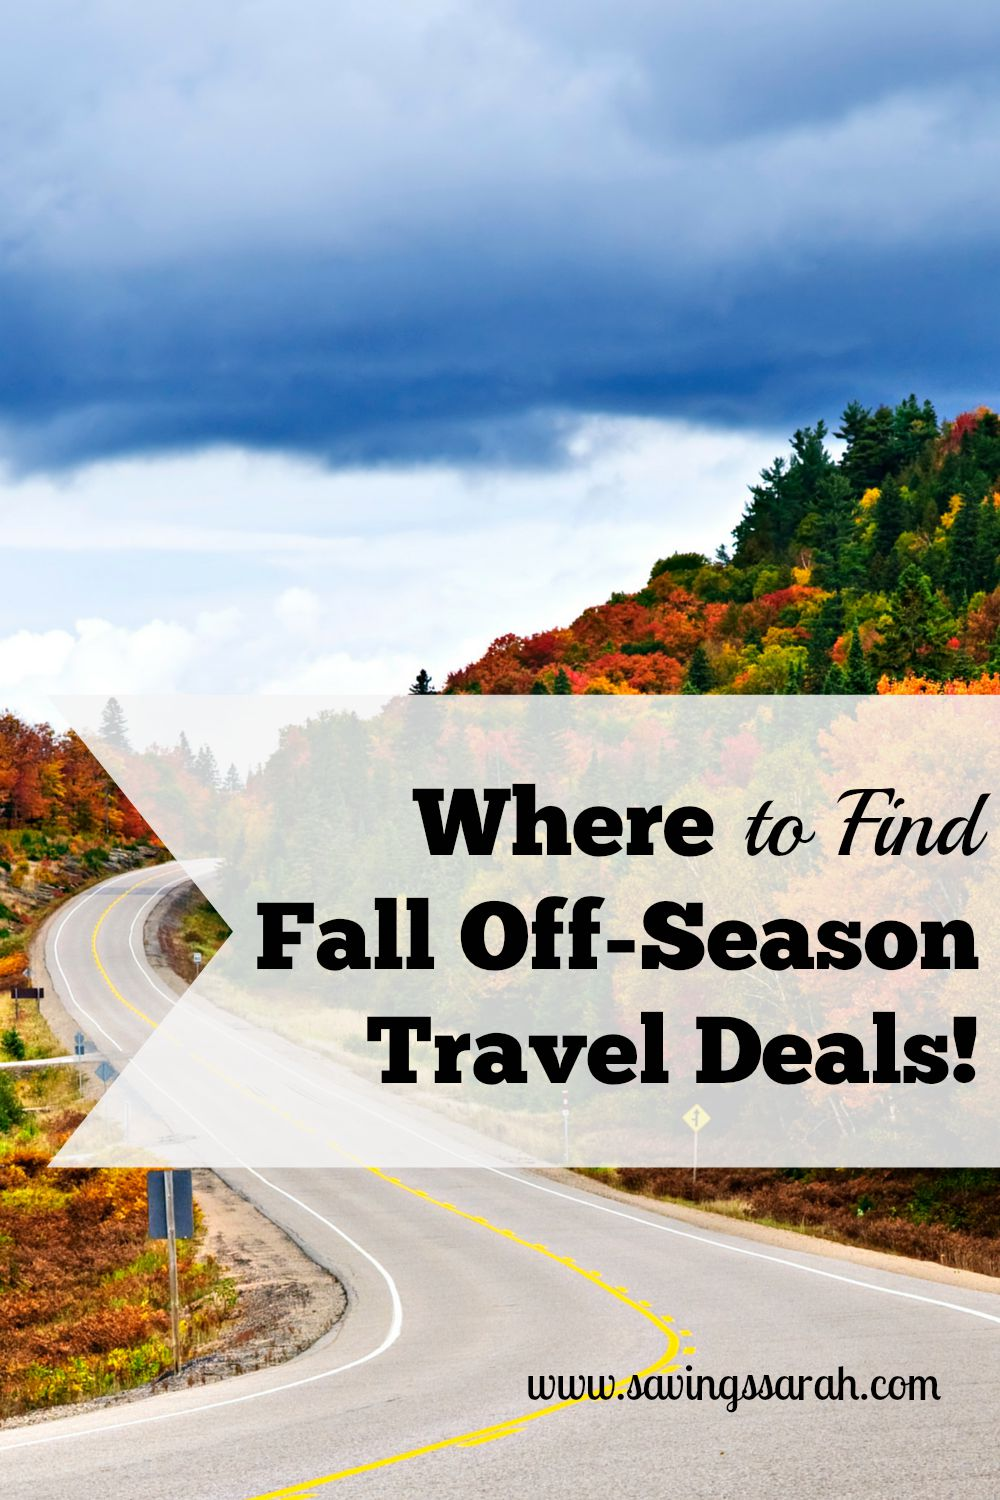 Where to Find Fall Off-Season Travel Deals